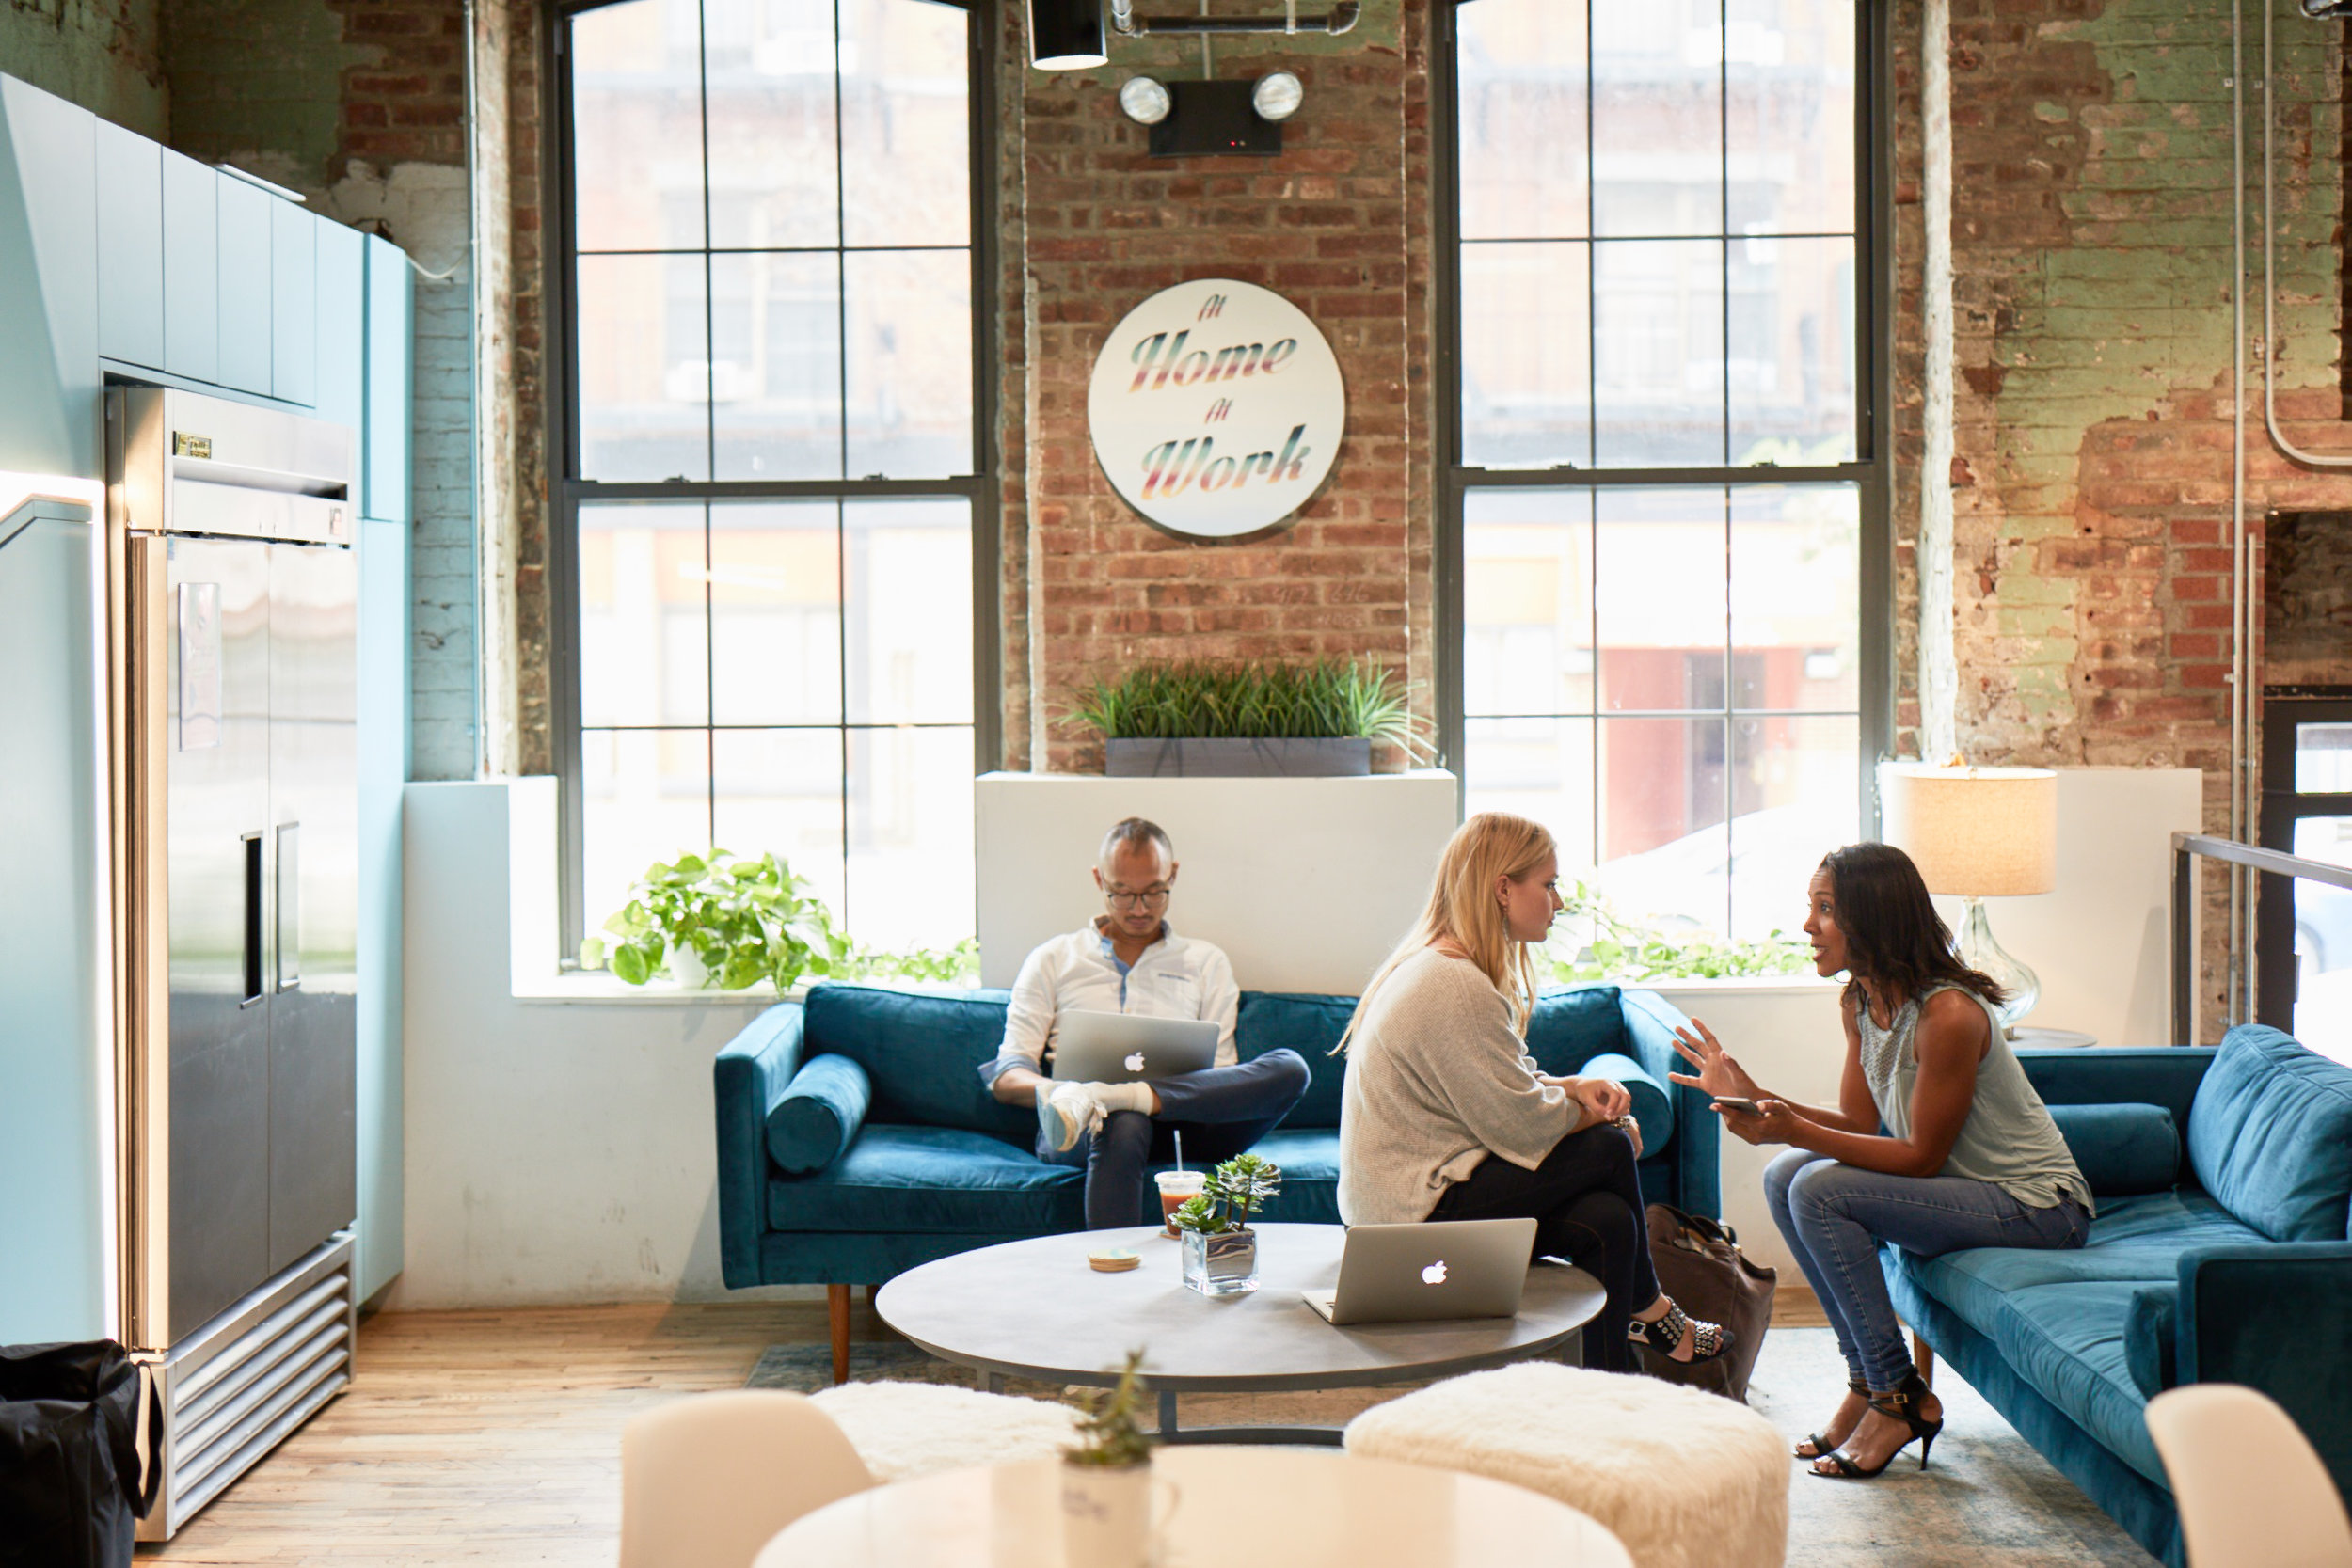 People chatting in the lounge area of a collaborative workspace